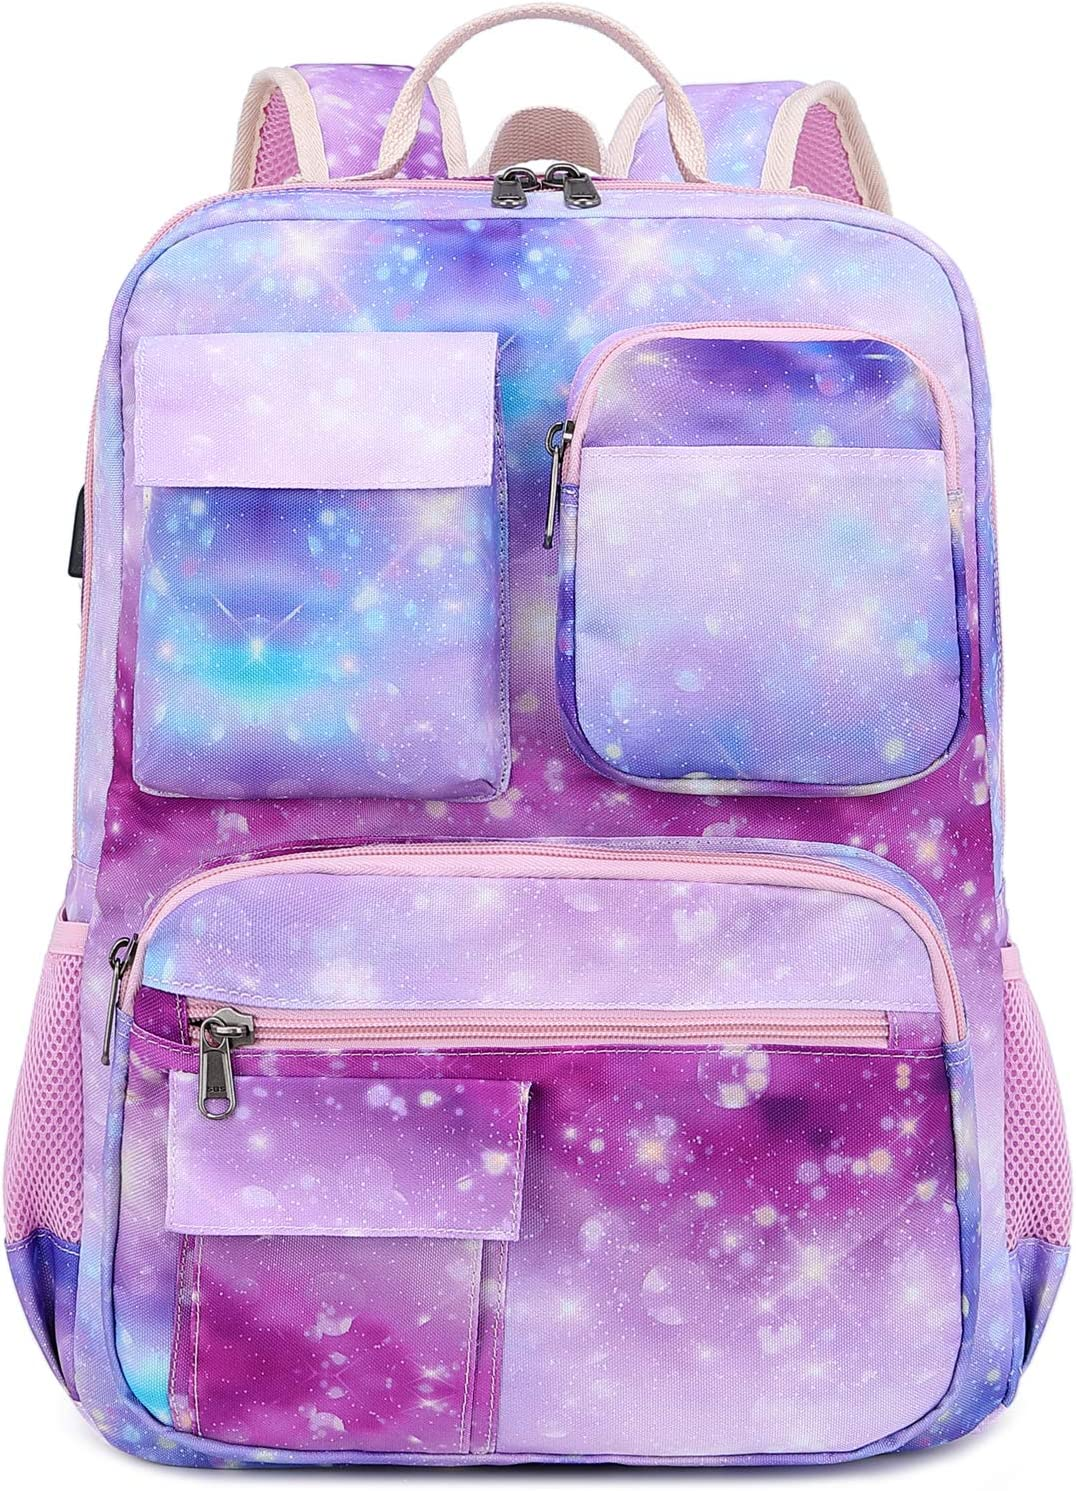 Galaxy Backpack for Women Girls, School Laptop Bookbag with USB Charging Port and Luggage Sleeve (Galaxy Pink)